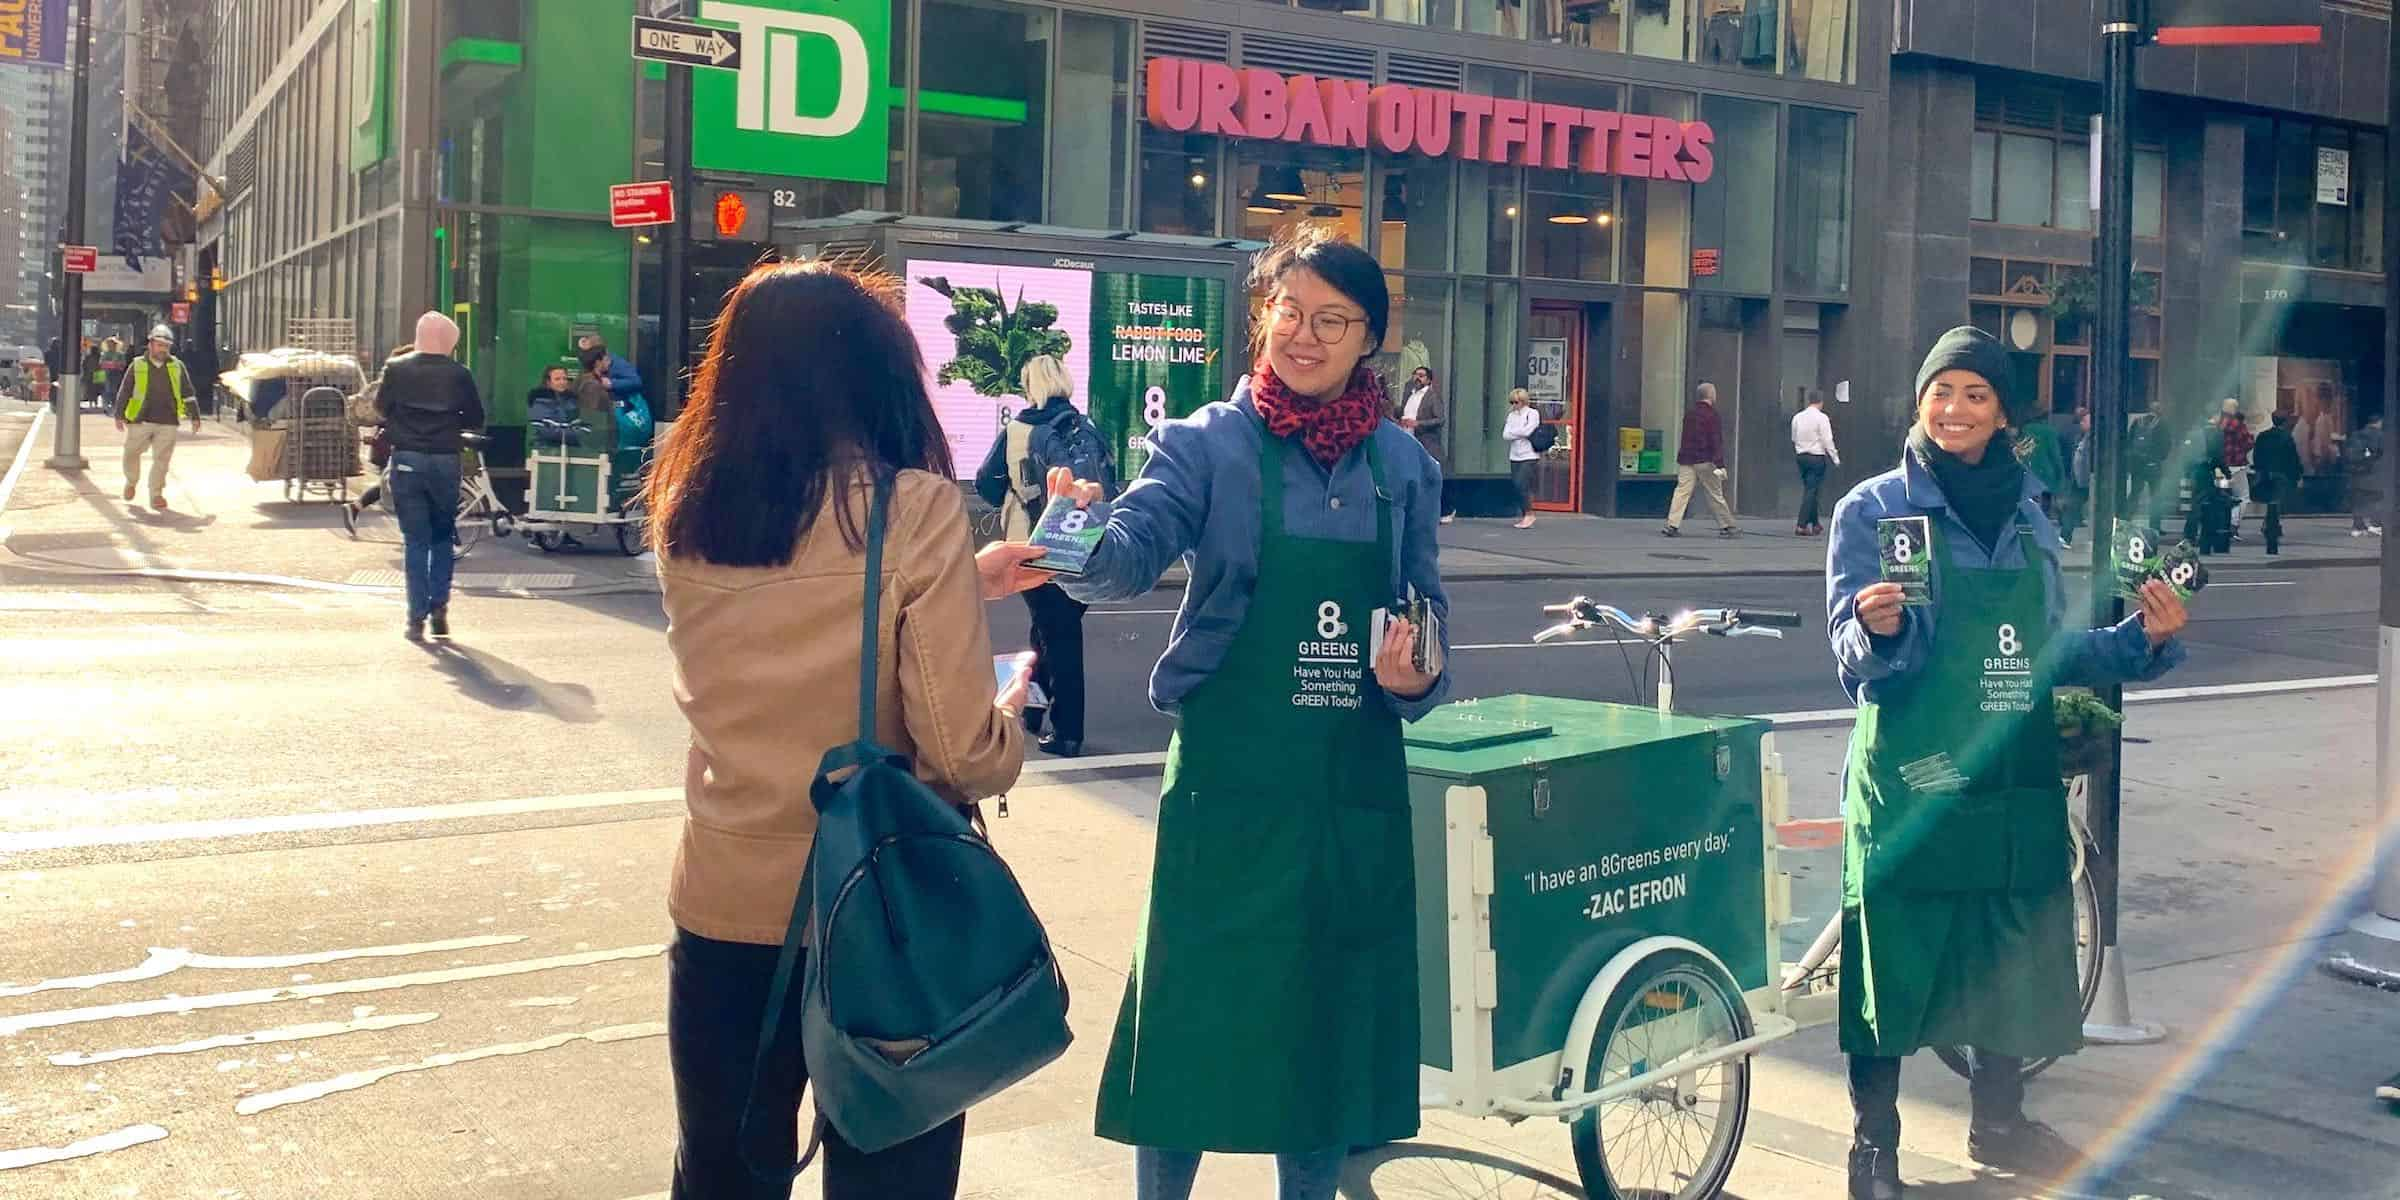 Health Supplement Tablet Product Sampling Marketing Example - Downtown, NYC